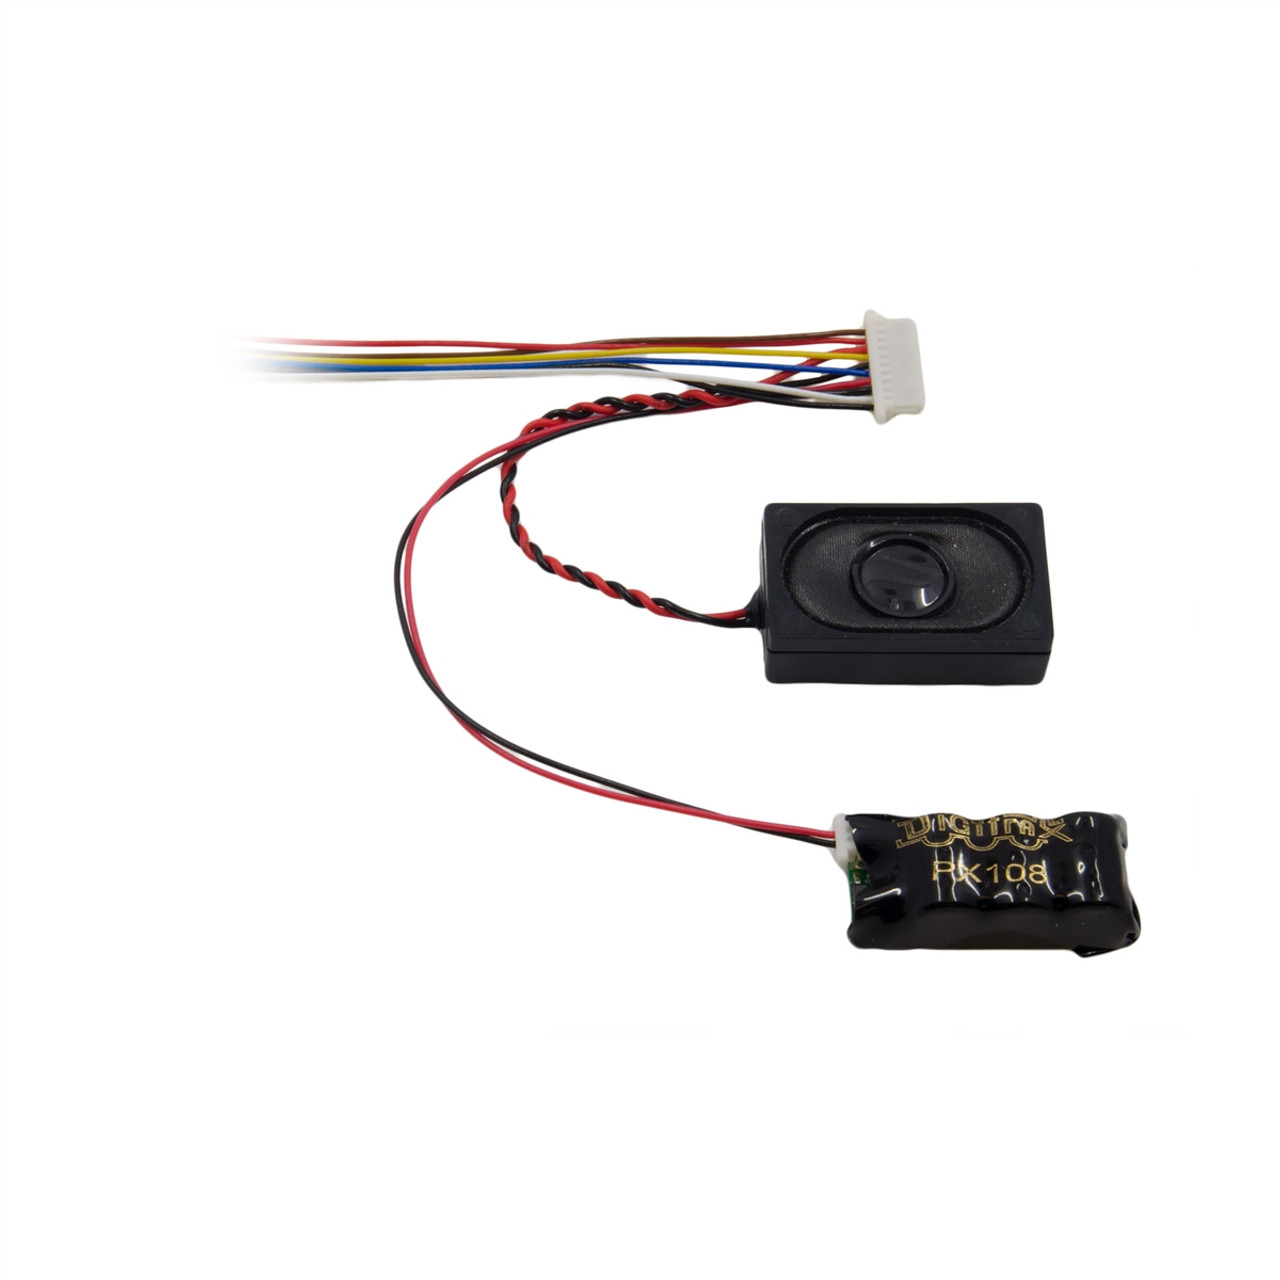 hight resolution of digitrax px108 10 power xtender for use with digitrax decoders equipped with 10 pin sound harness modeltrainstuff com